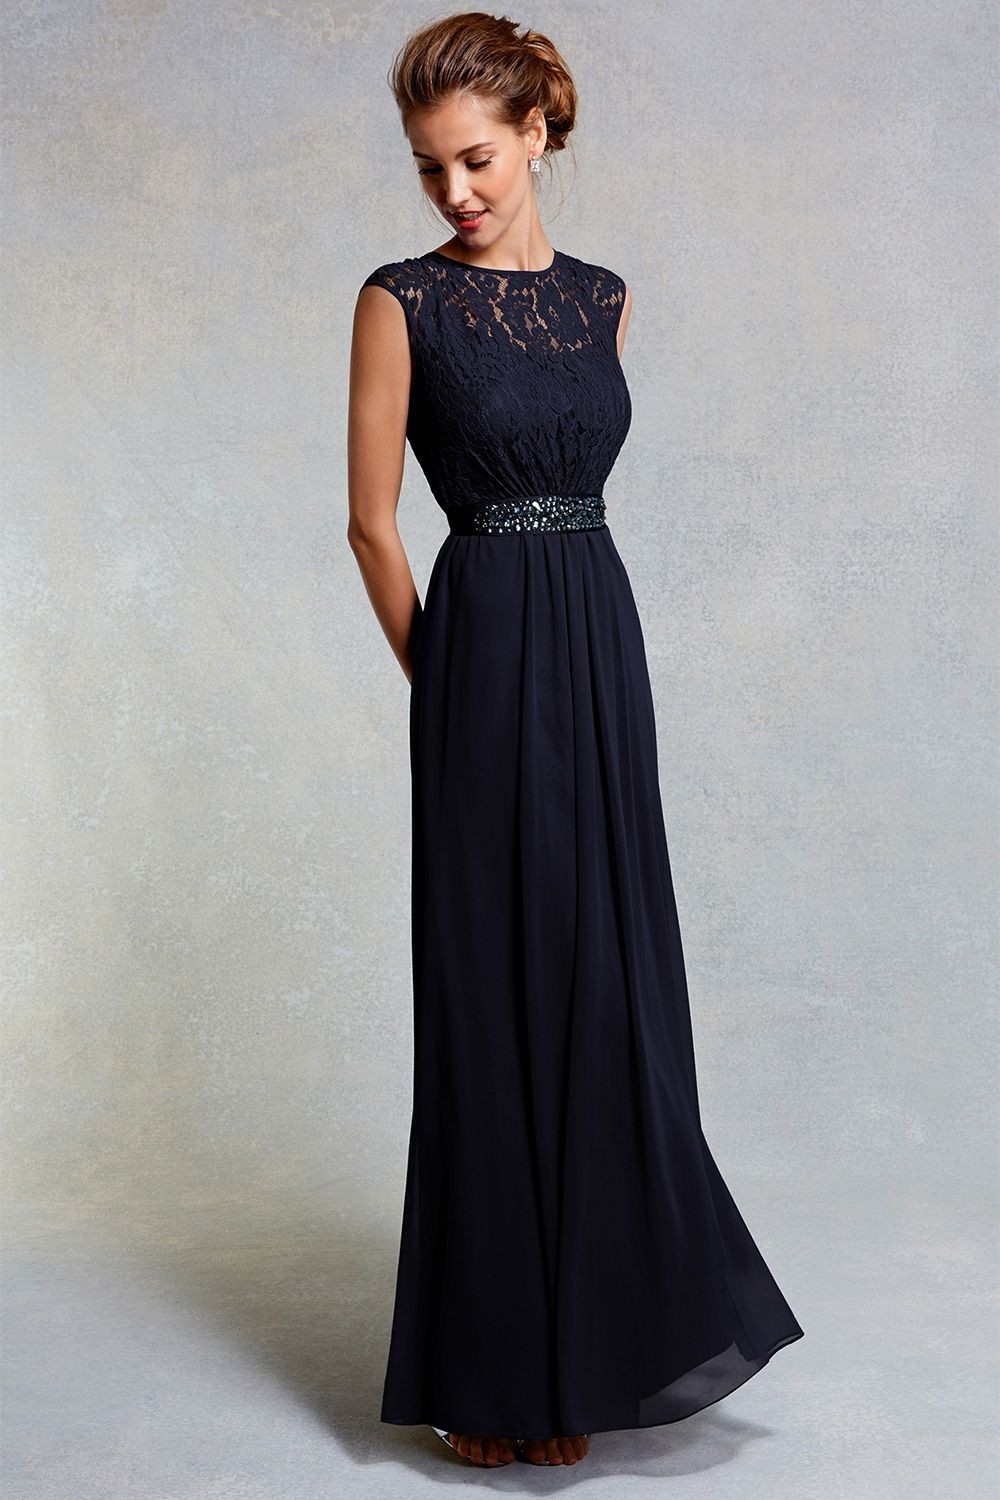 Navy Dresses | Blues LORI LEE LACE MAXI DRESS | Coast Stores Limited ...